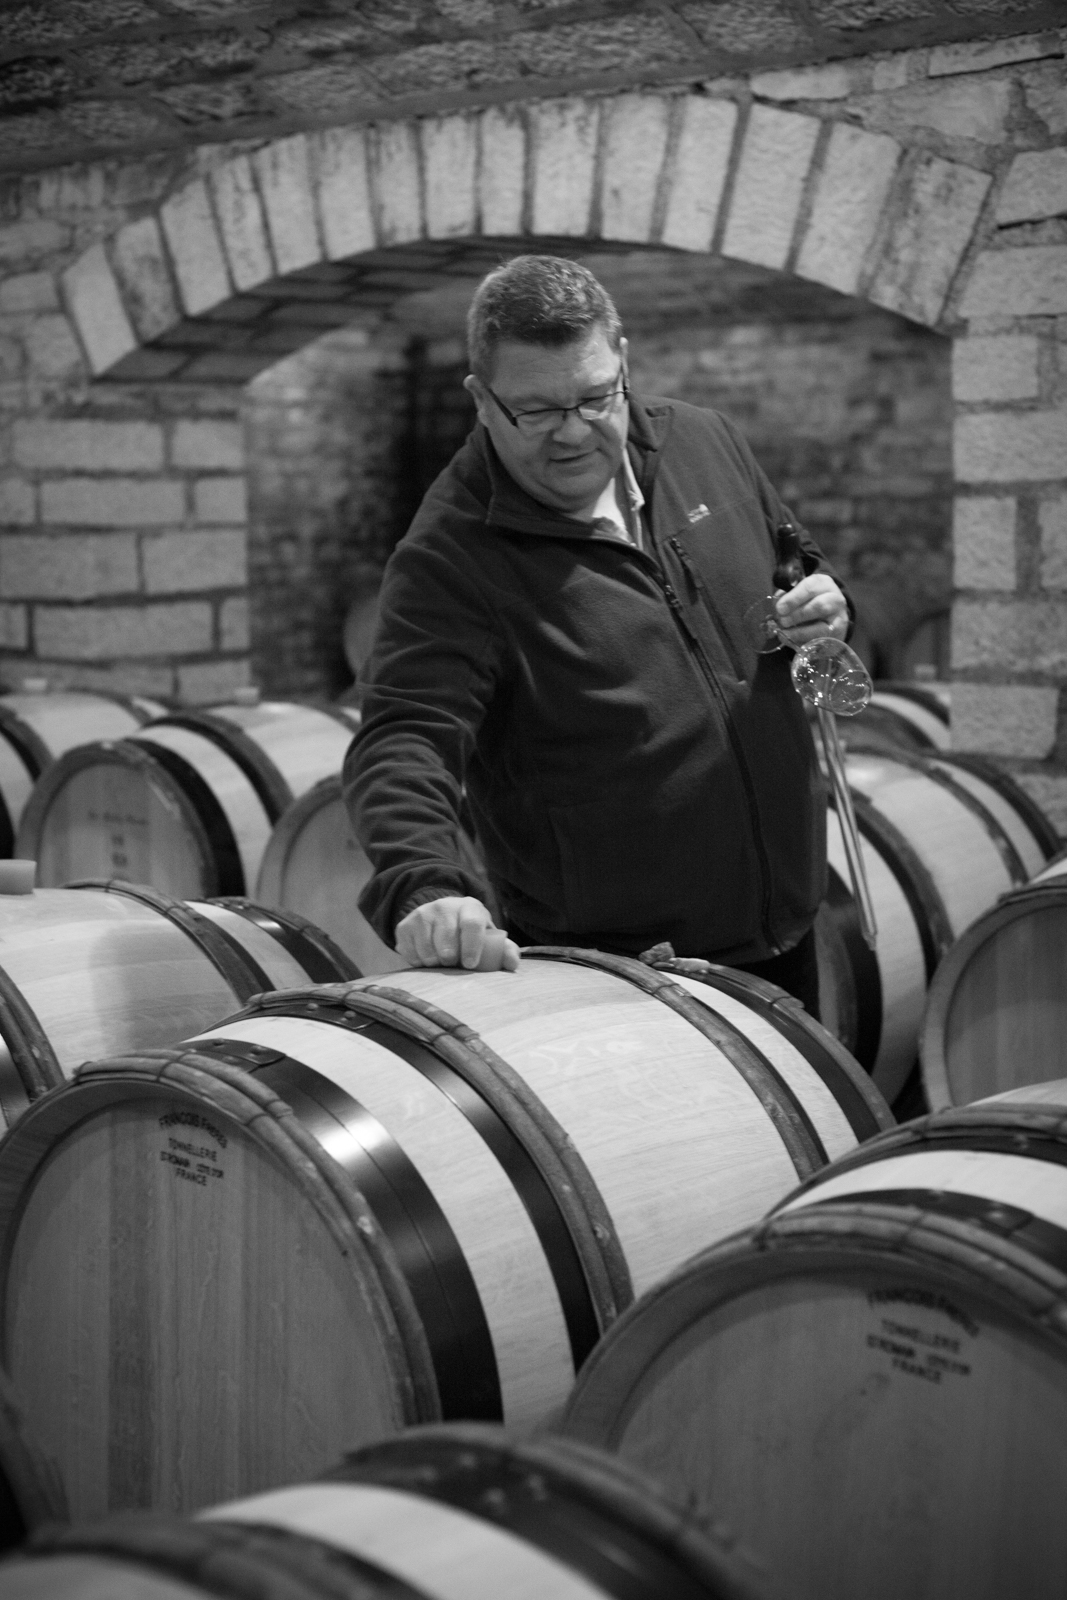 Bertrand de Villaine in the cellar of Domaine de la Romanée-Conti. ©Kevin Day / Opening a Bottle